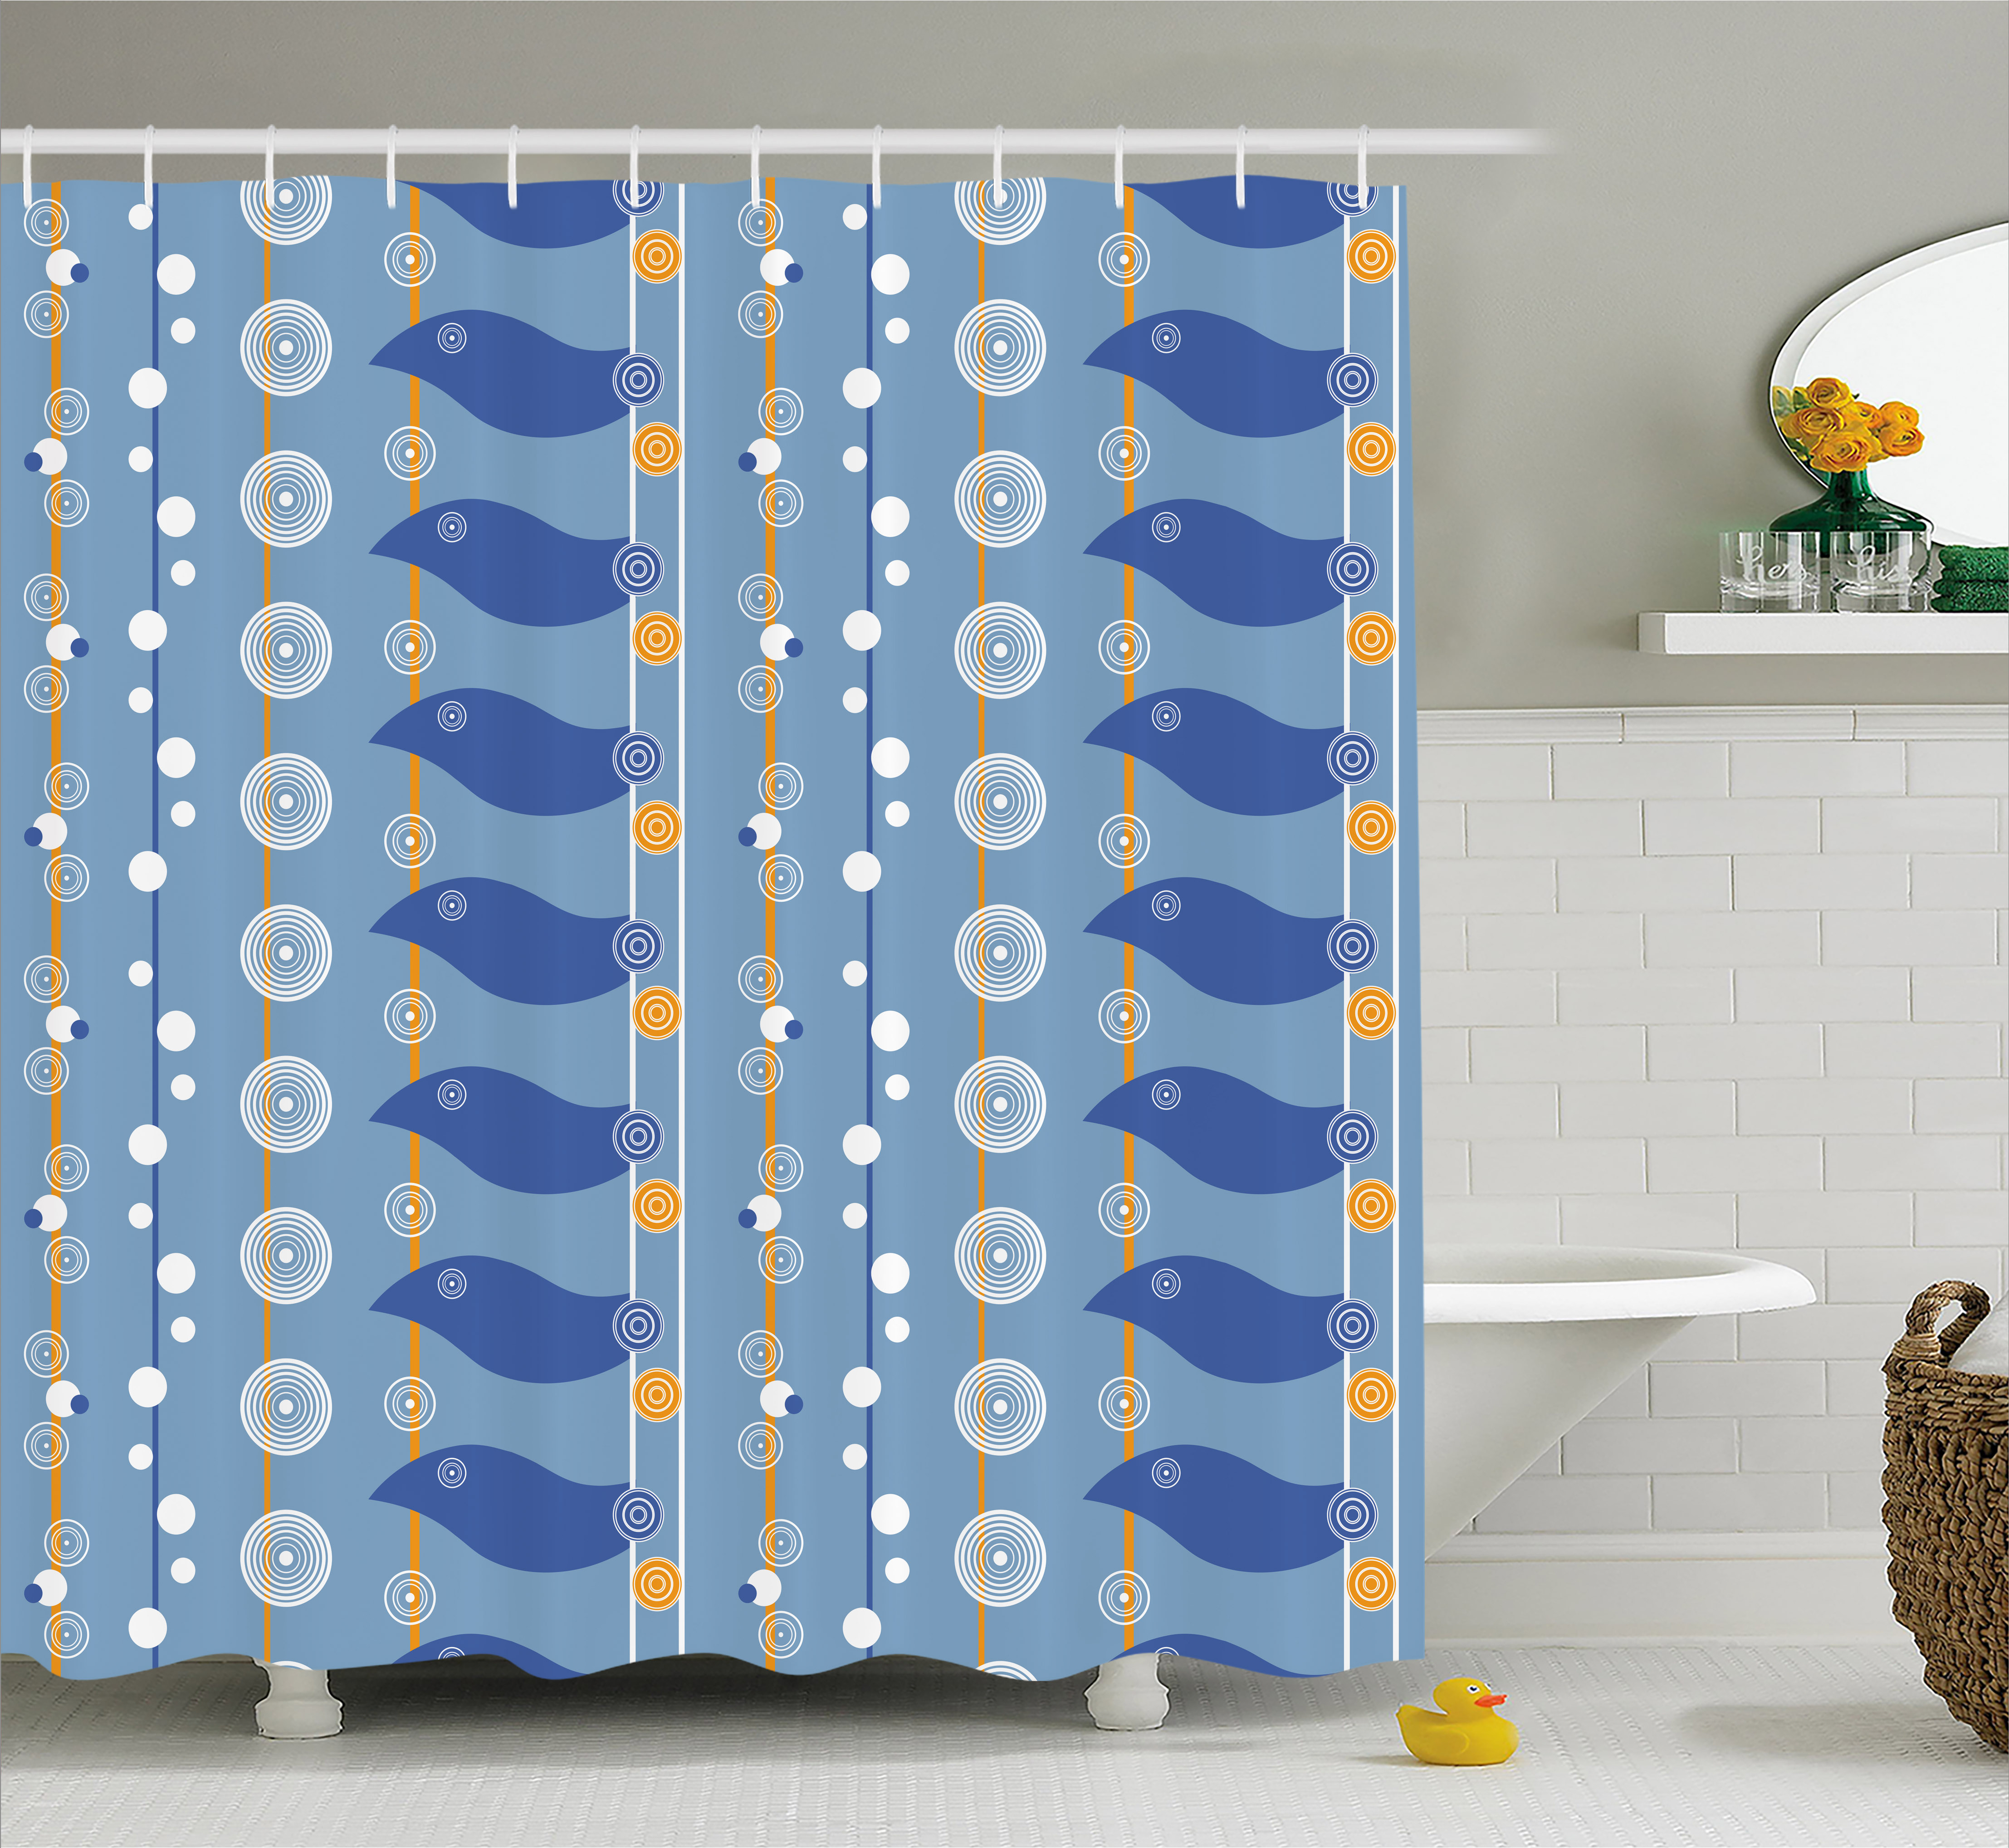 Yellow and Blue Shower Curtain, Abstract Sea Pattern with Spiral Circles Waves Lines Illustration, Fabric Bathroom Set with Hooks, 69W X 70L Inches, Light Blue Marigold, by Ambesonne